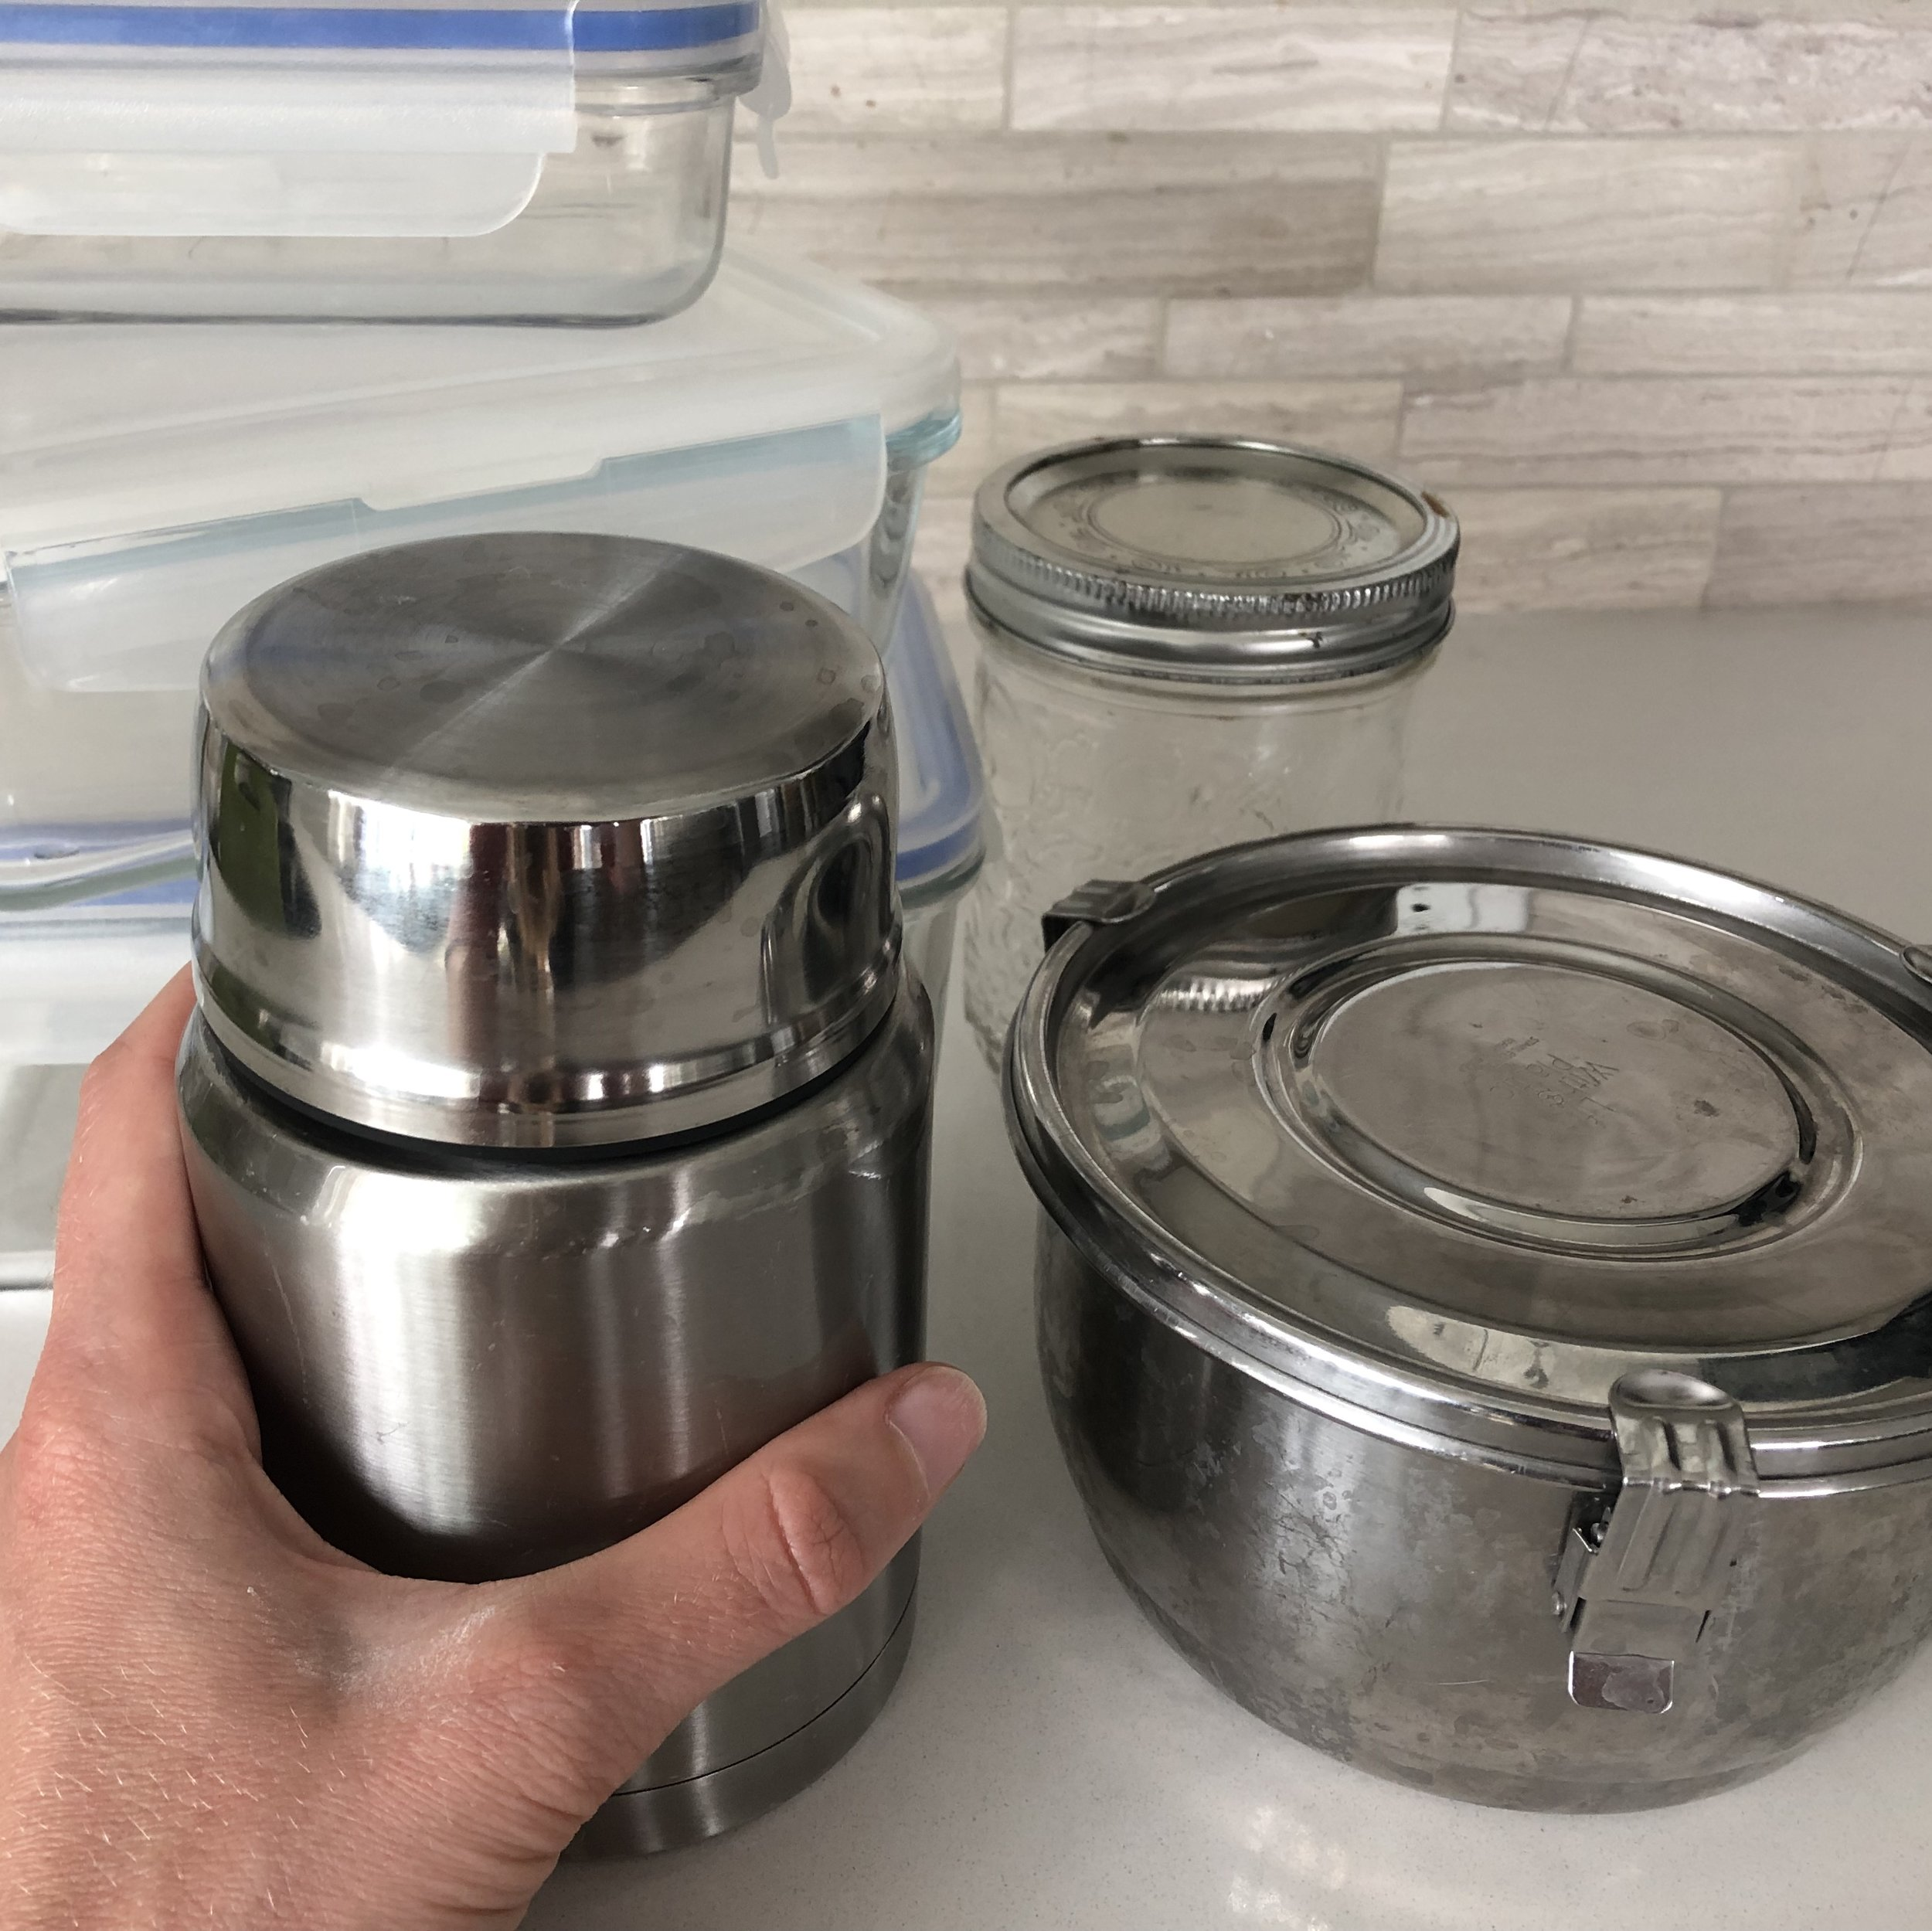 Glass and stainless steel food containers